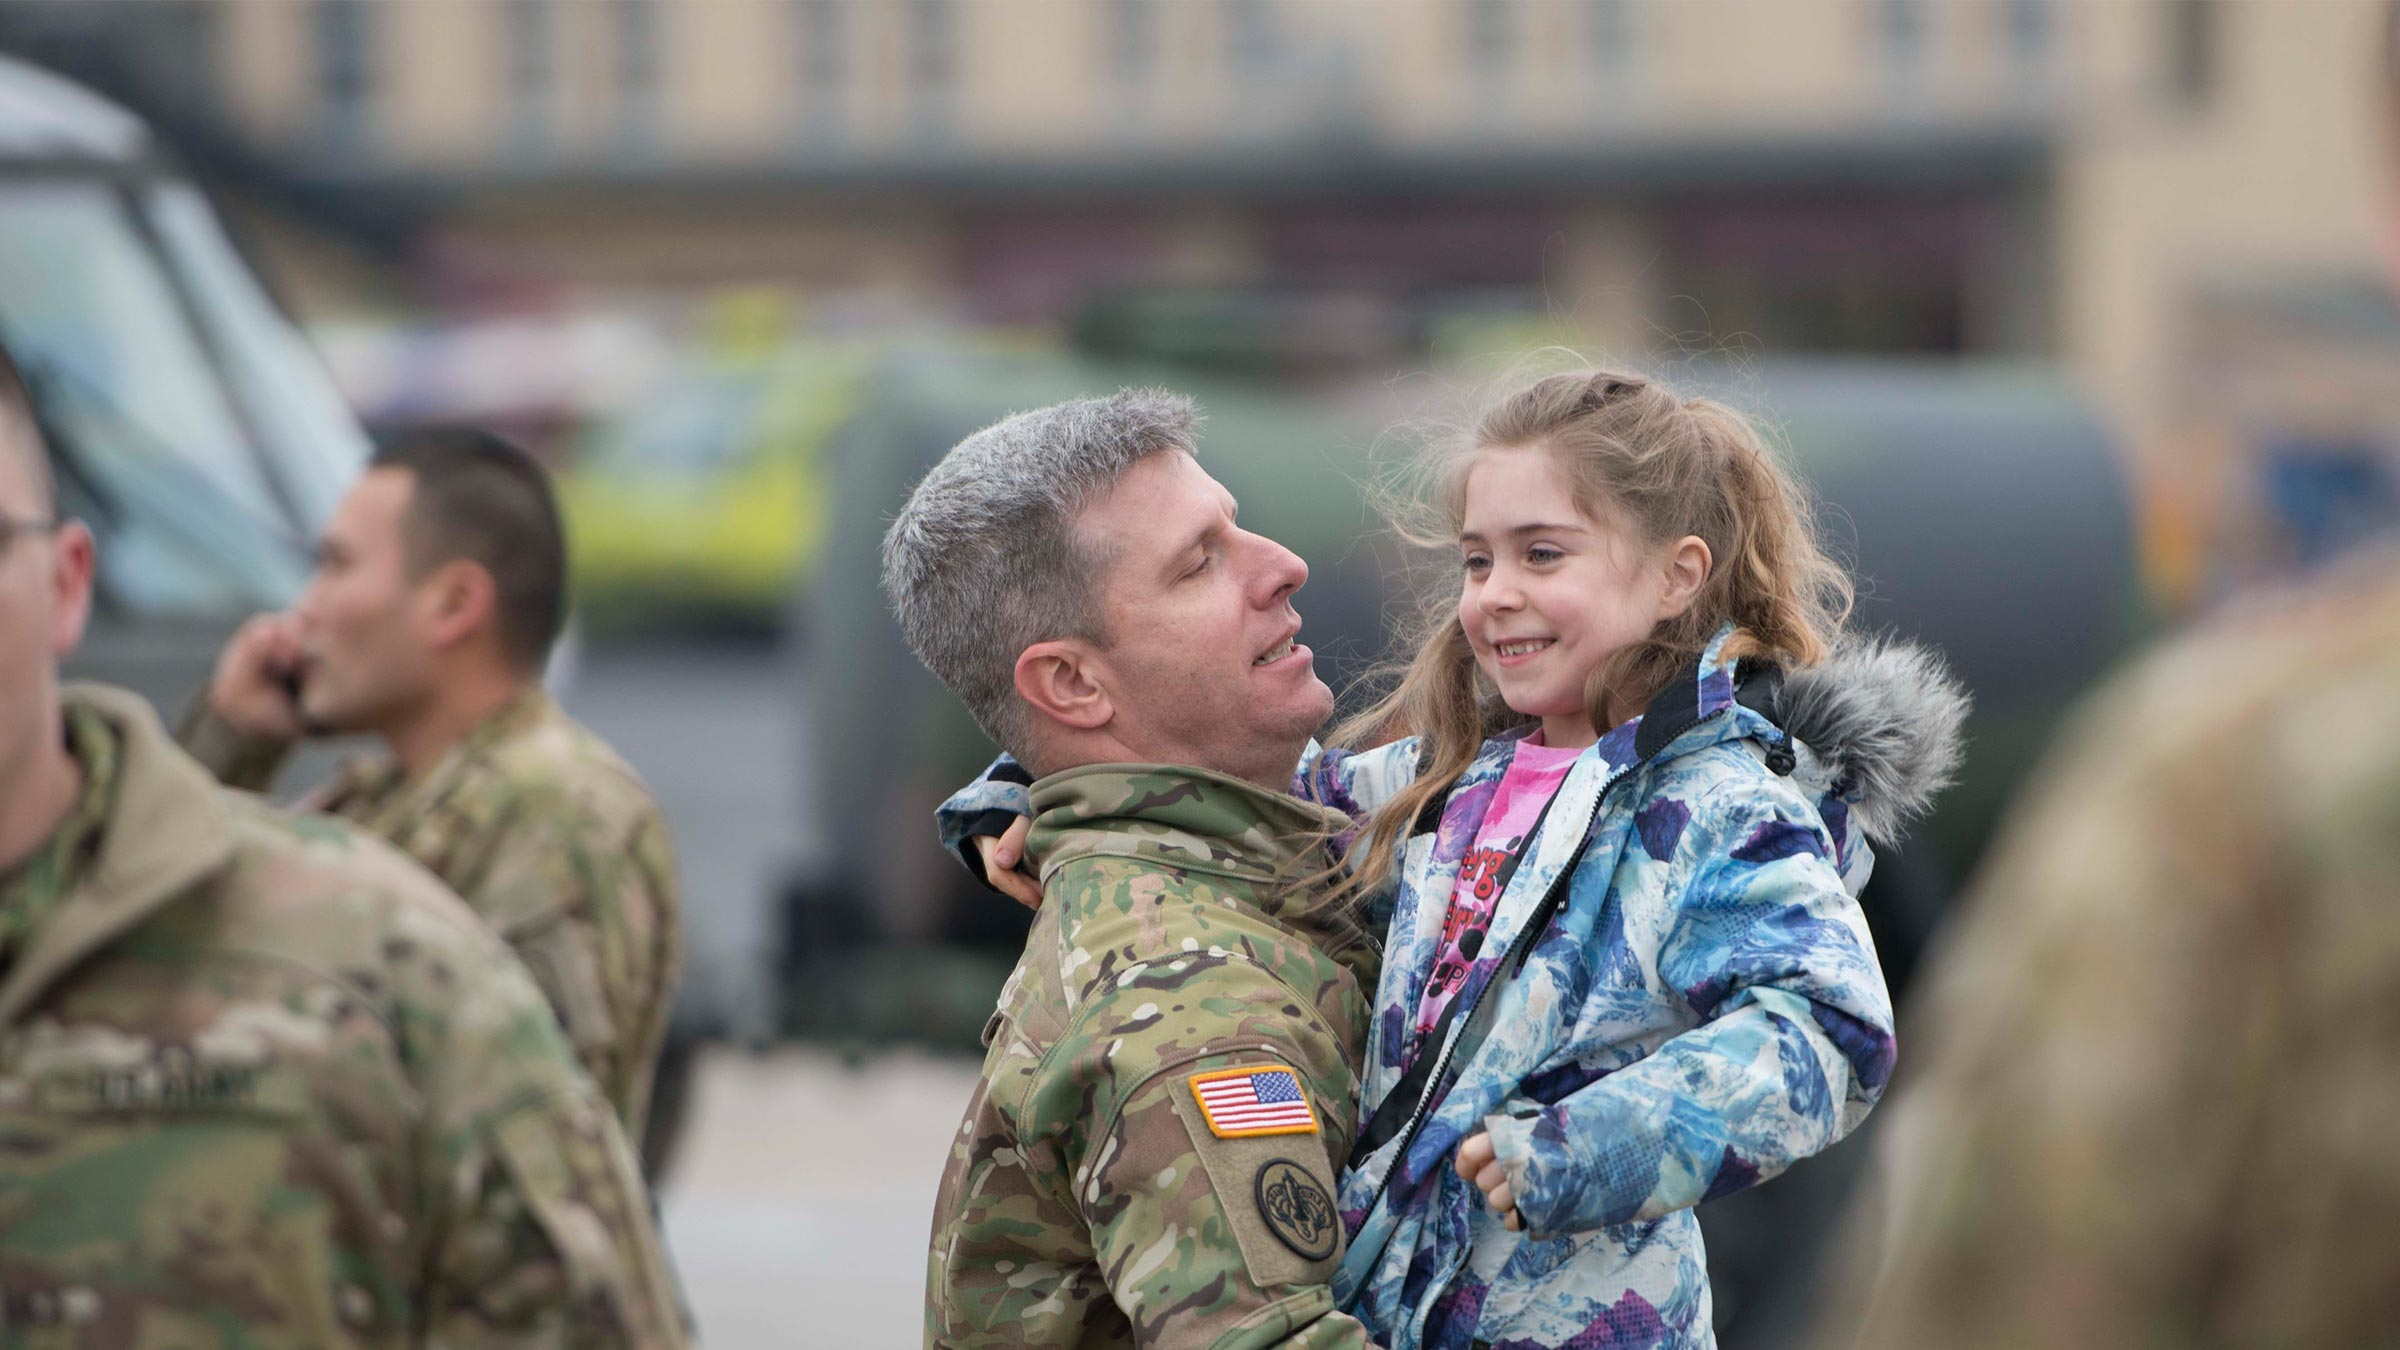 A service member greets his young daughter